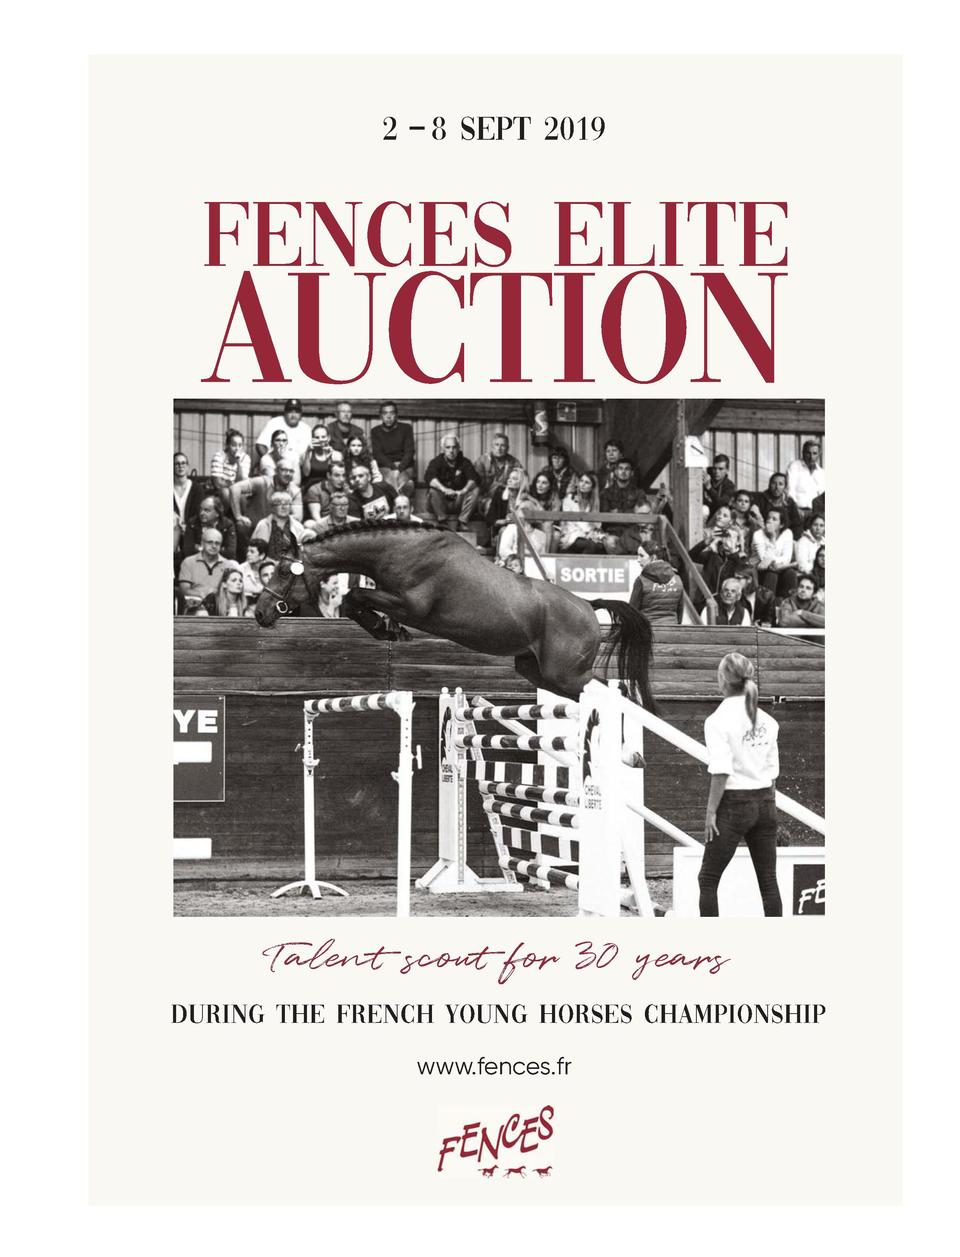 177              89A  FENCES ELITE  AUCTION  Talent scout for 30 years during the french young horses championship www.fen...